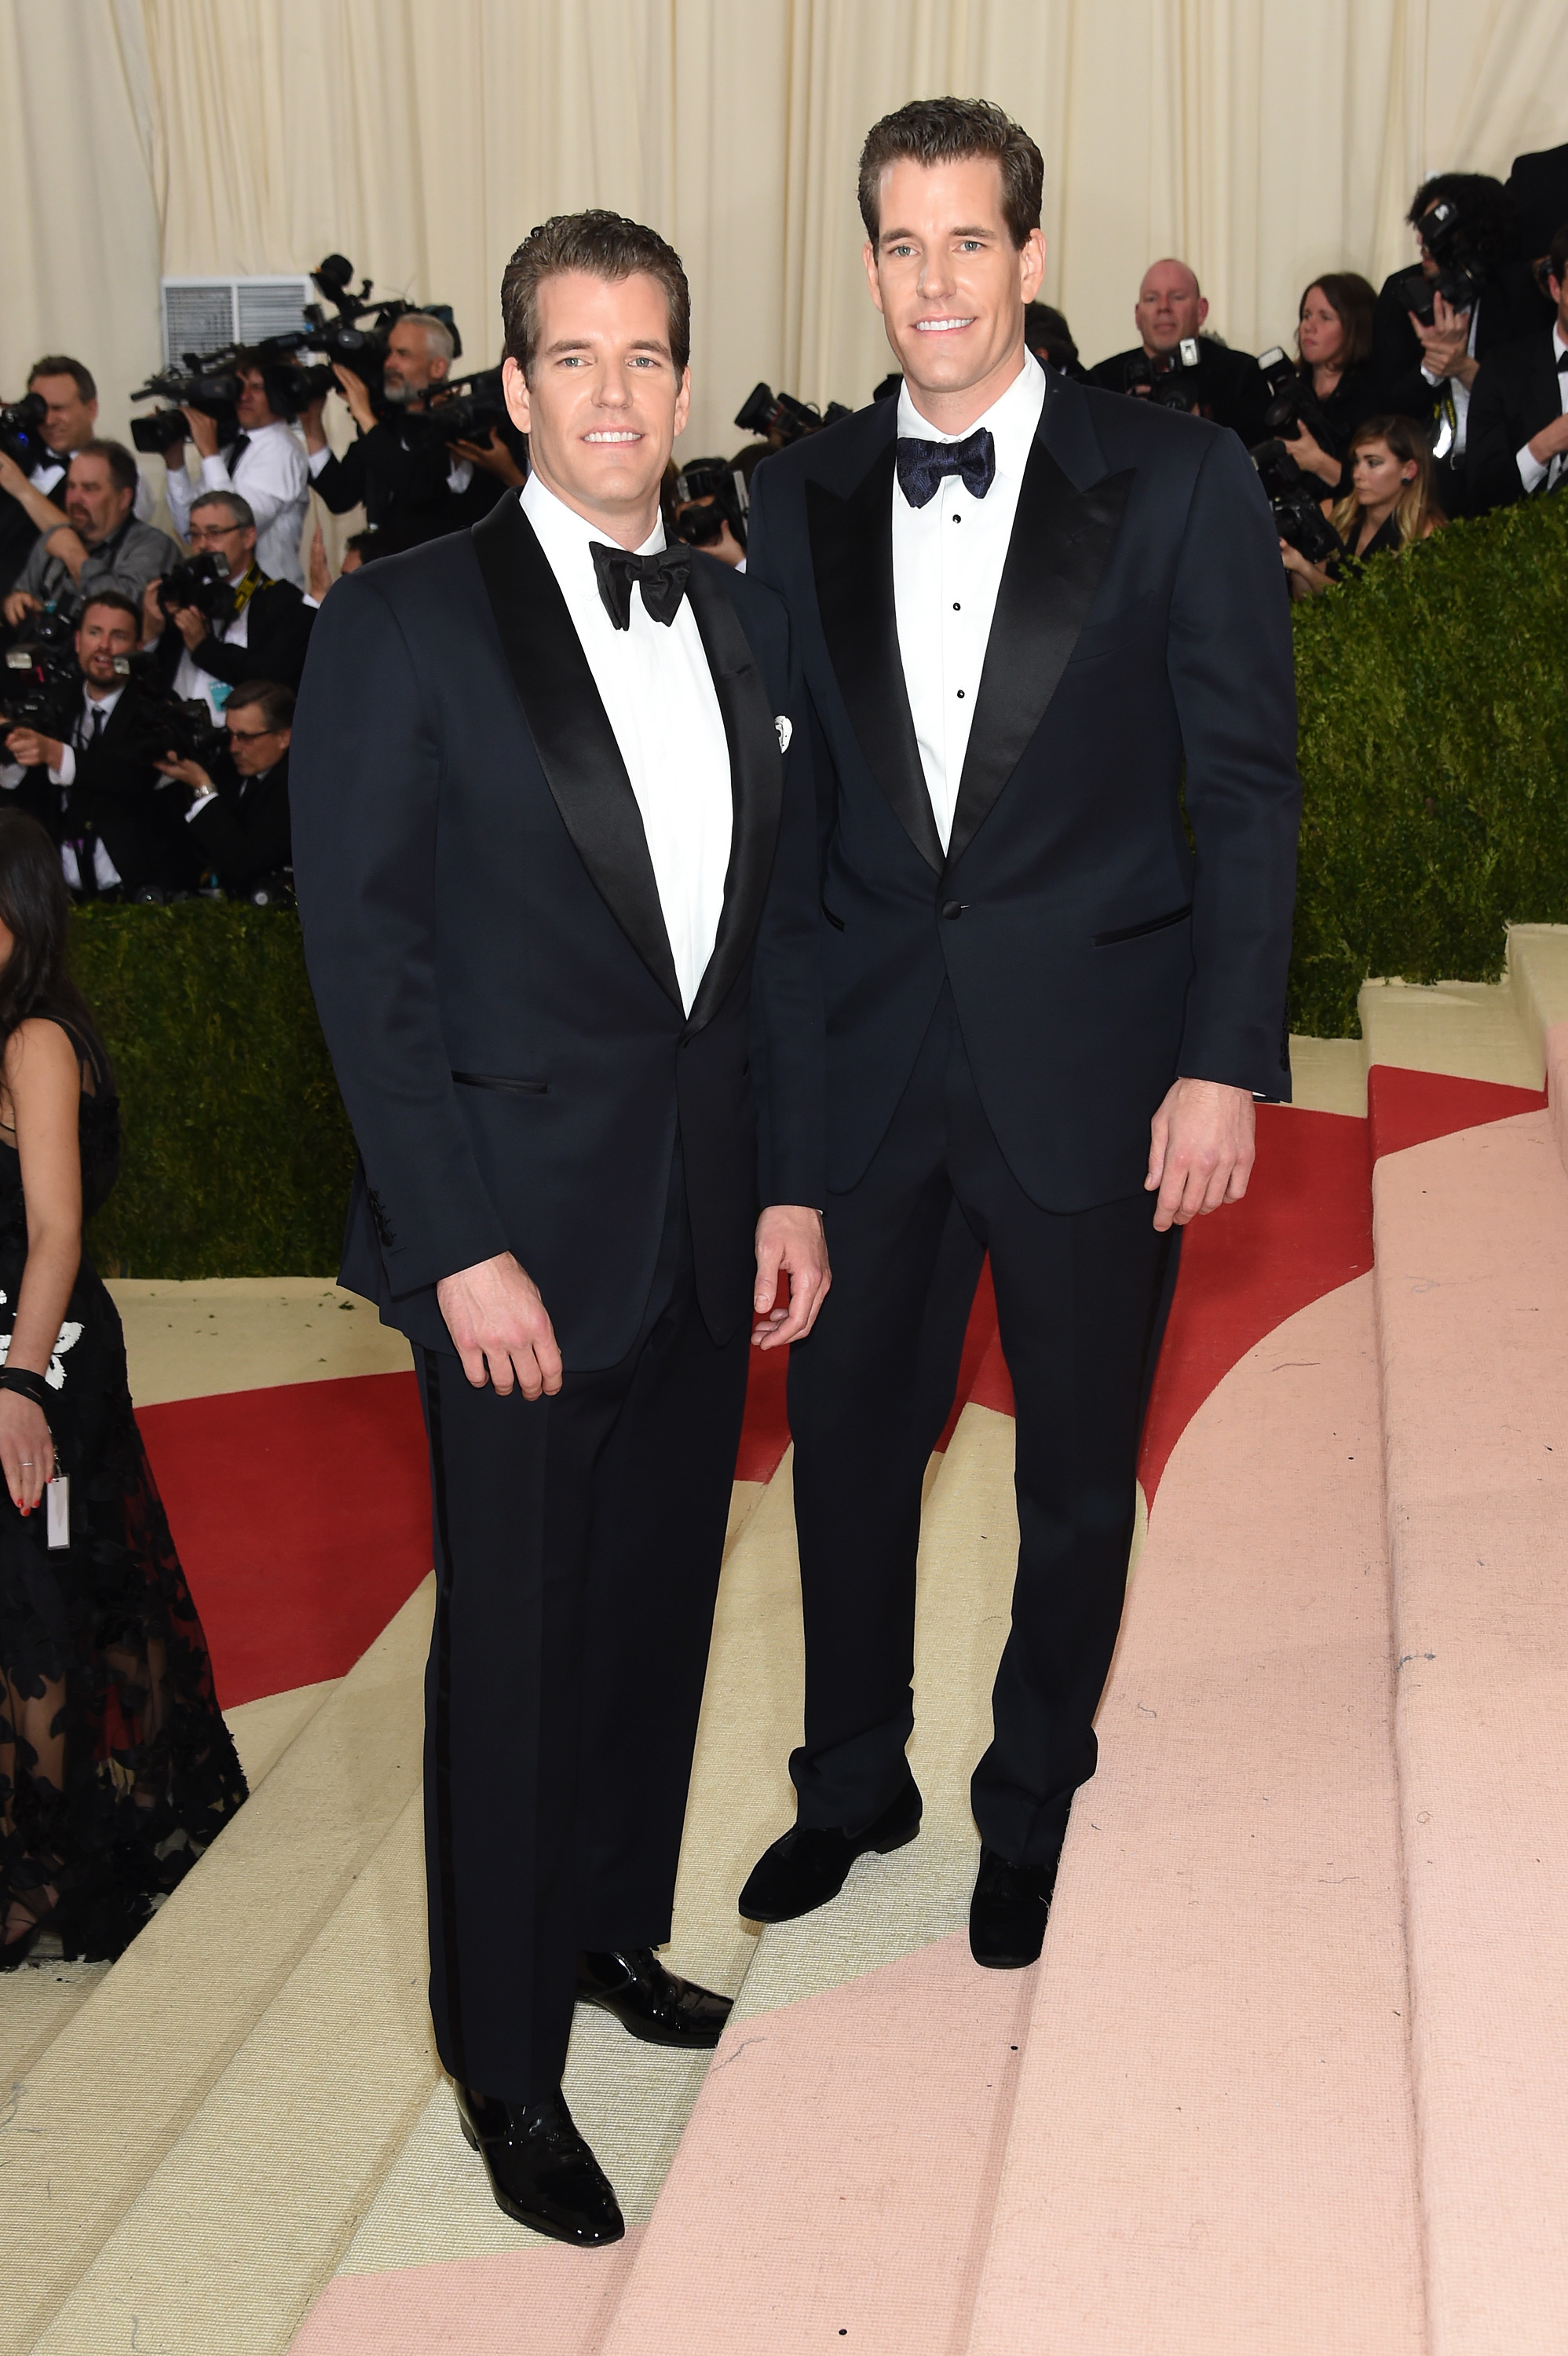 The Winklevoss twins attend  Manus x Machina: Fashion In An Age Of Technology  Costume Institute Gala at Metropolitan Museum of Art on May 2, 2016 in New York City.